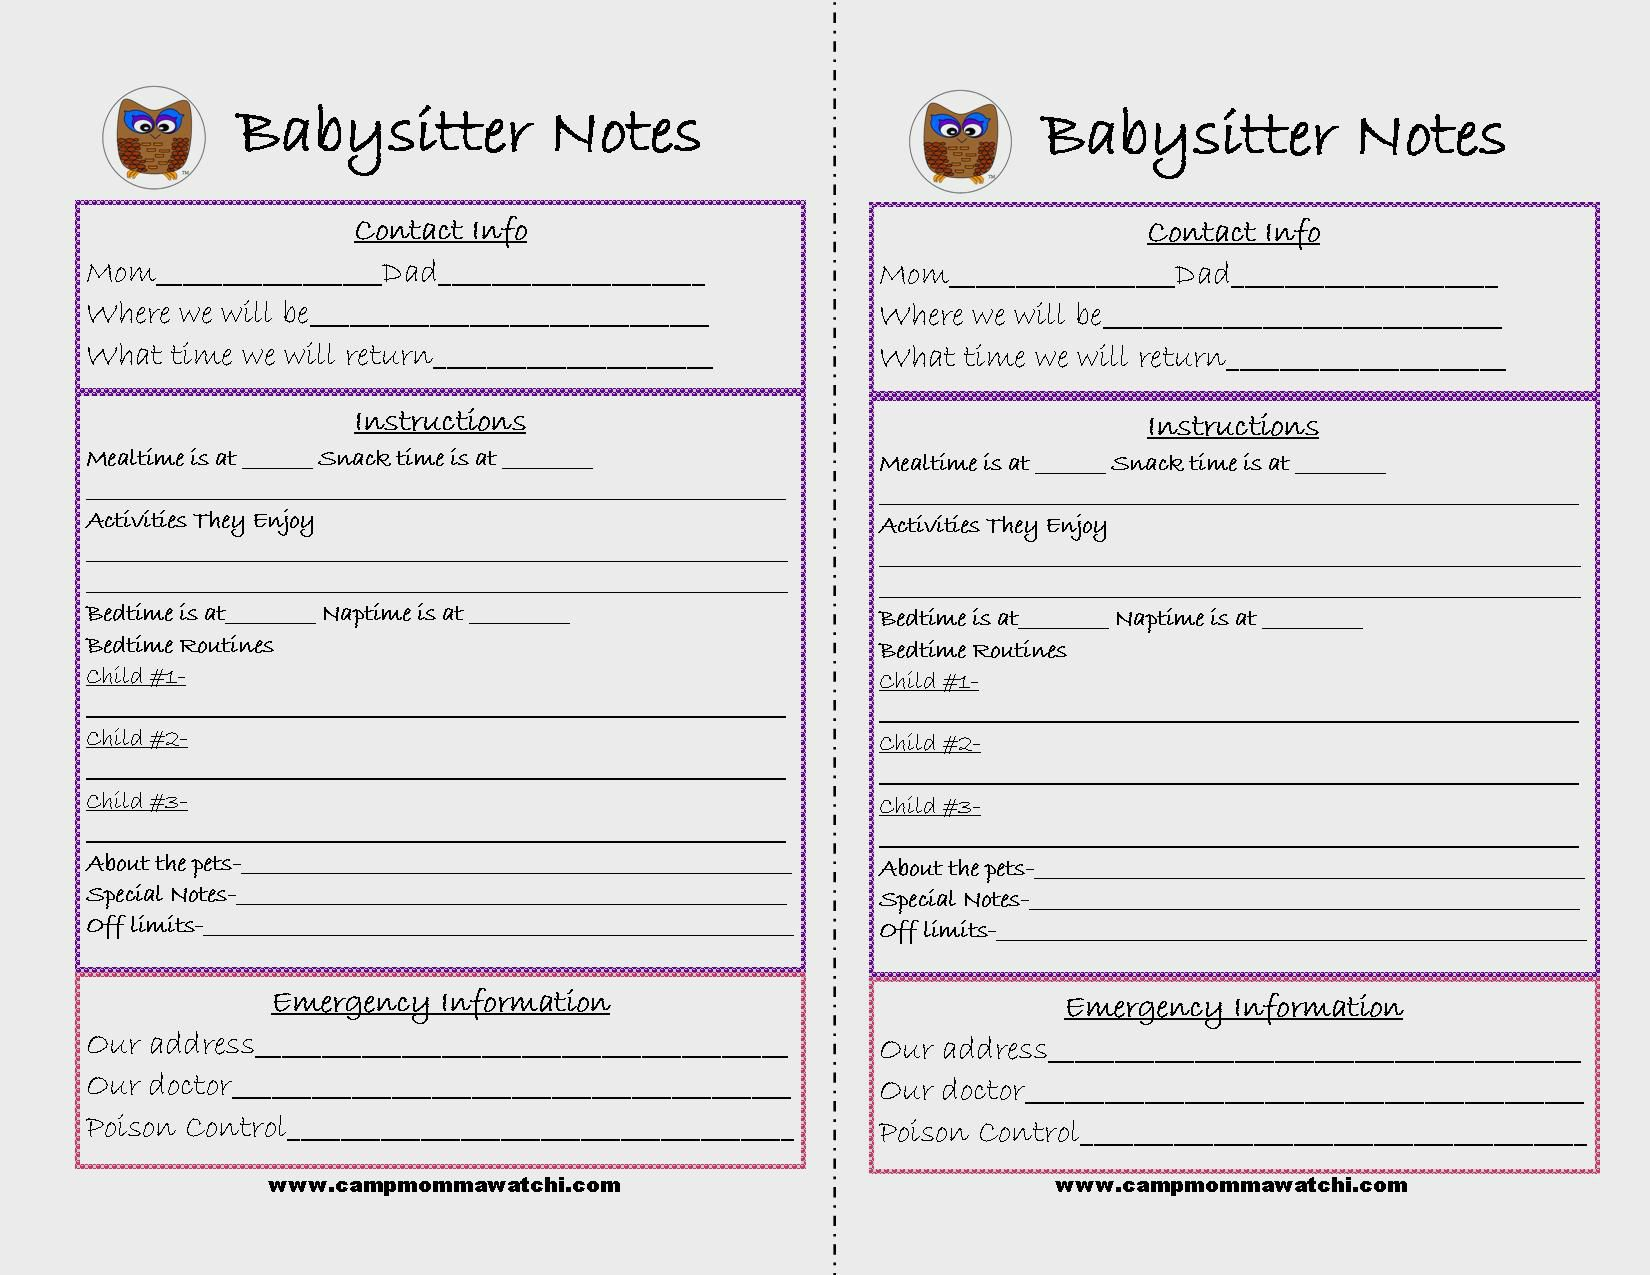 Printable Information For Baby Sitter